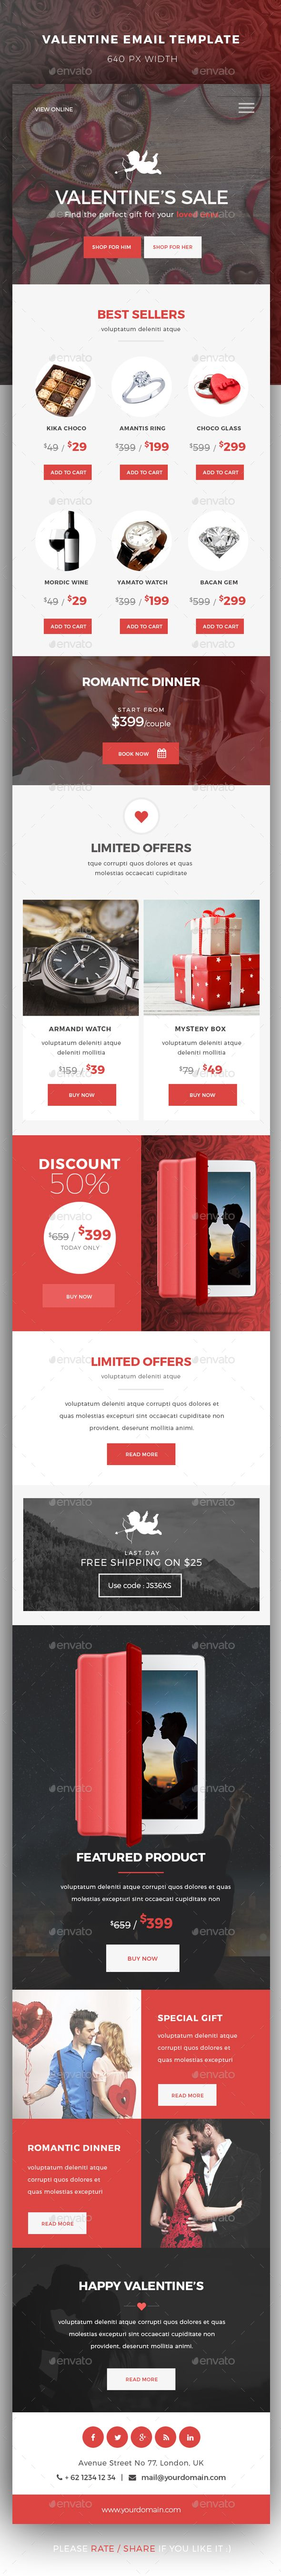 Valentine Newsletter Email Template Pinterest Template